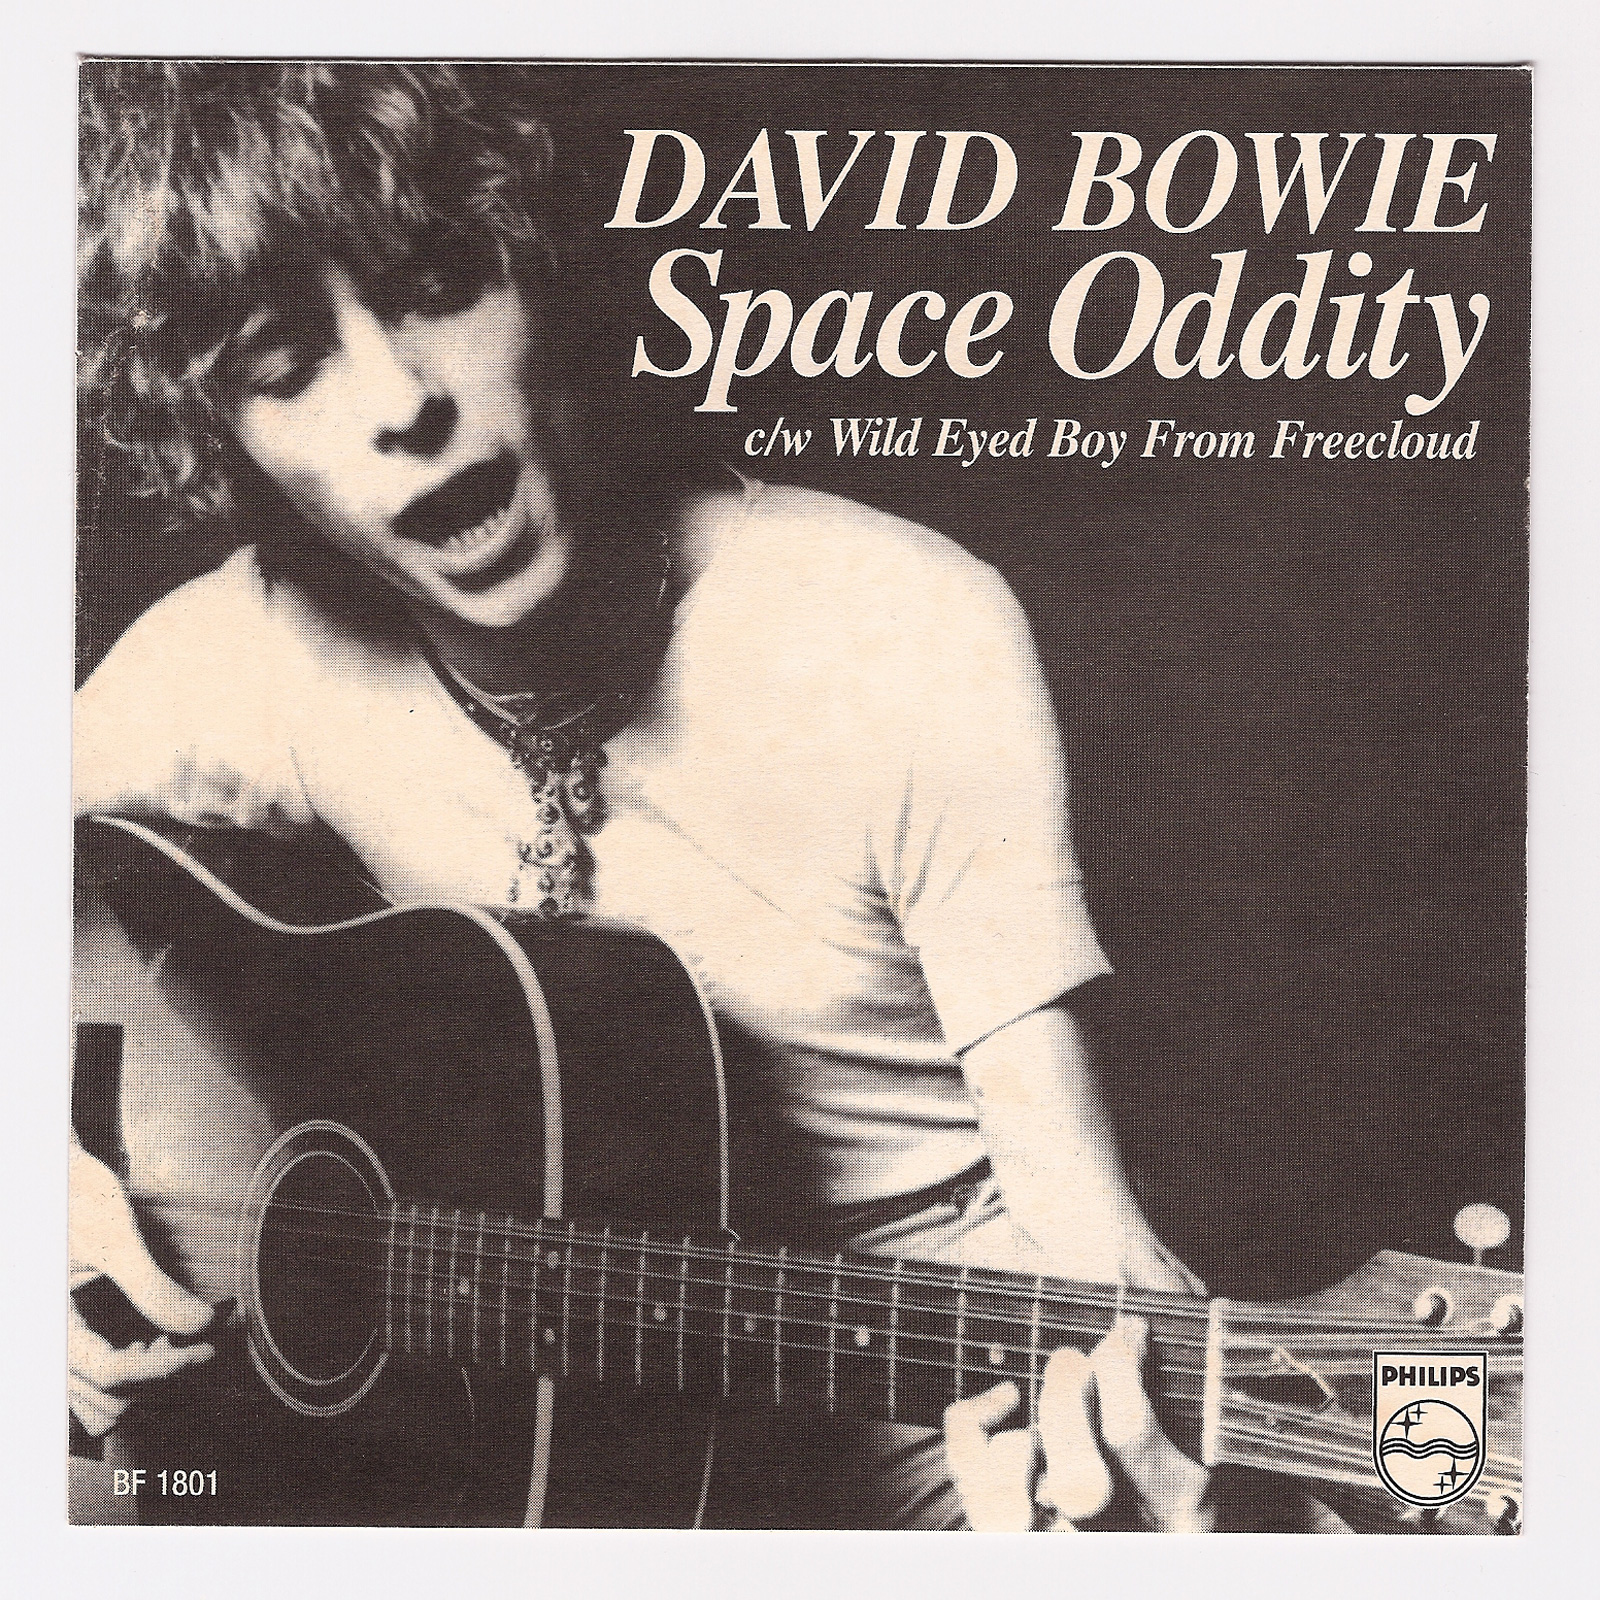 space oddity semblance